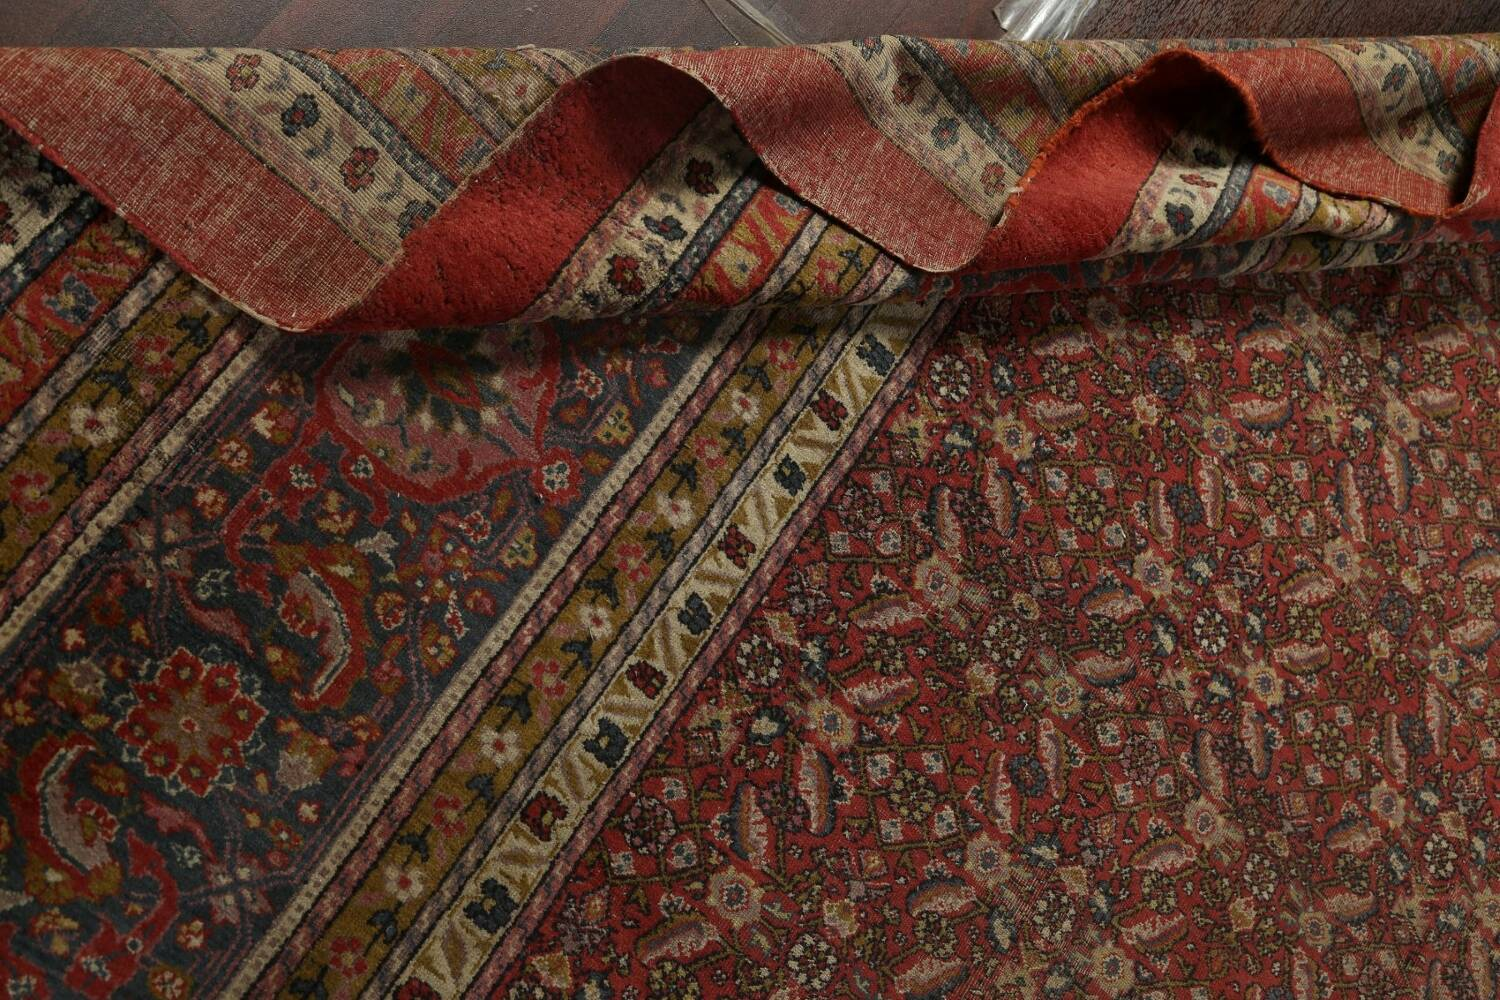 Antique Vegetable Dye Sultanabad Persian Rug 13x20 image 18